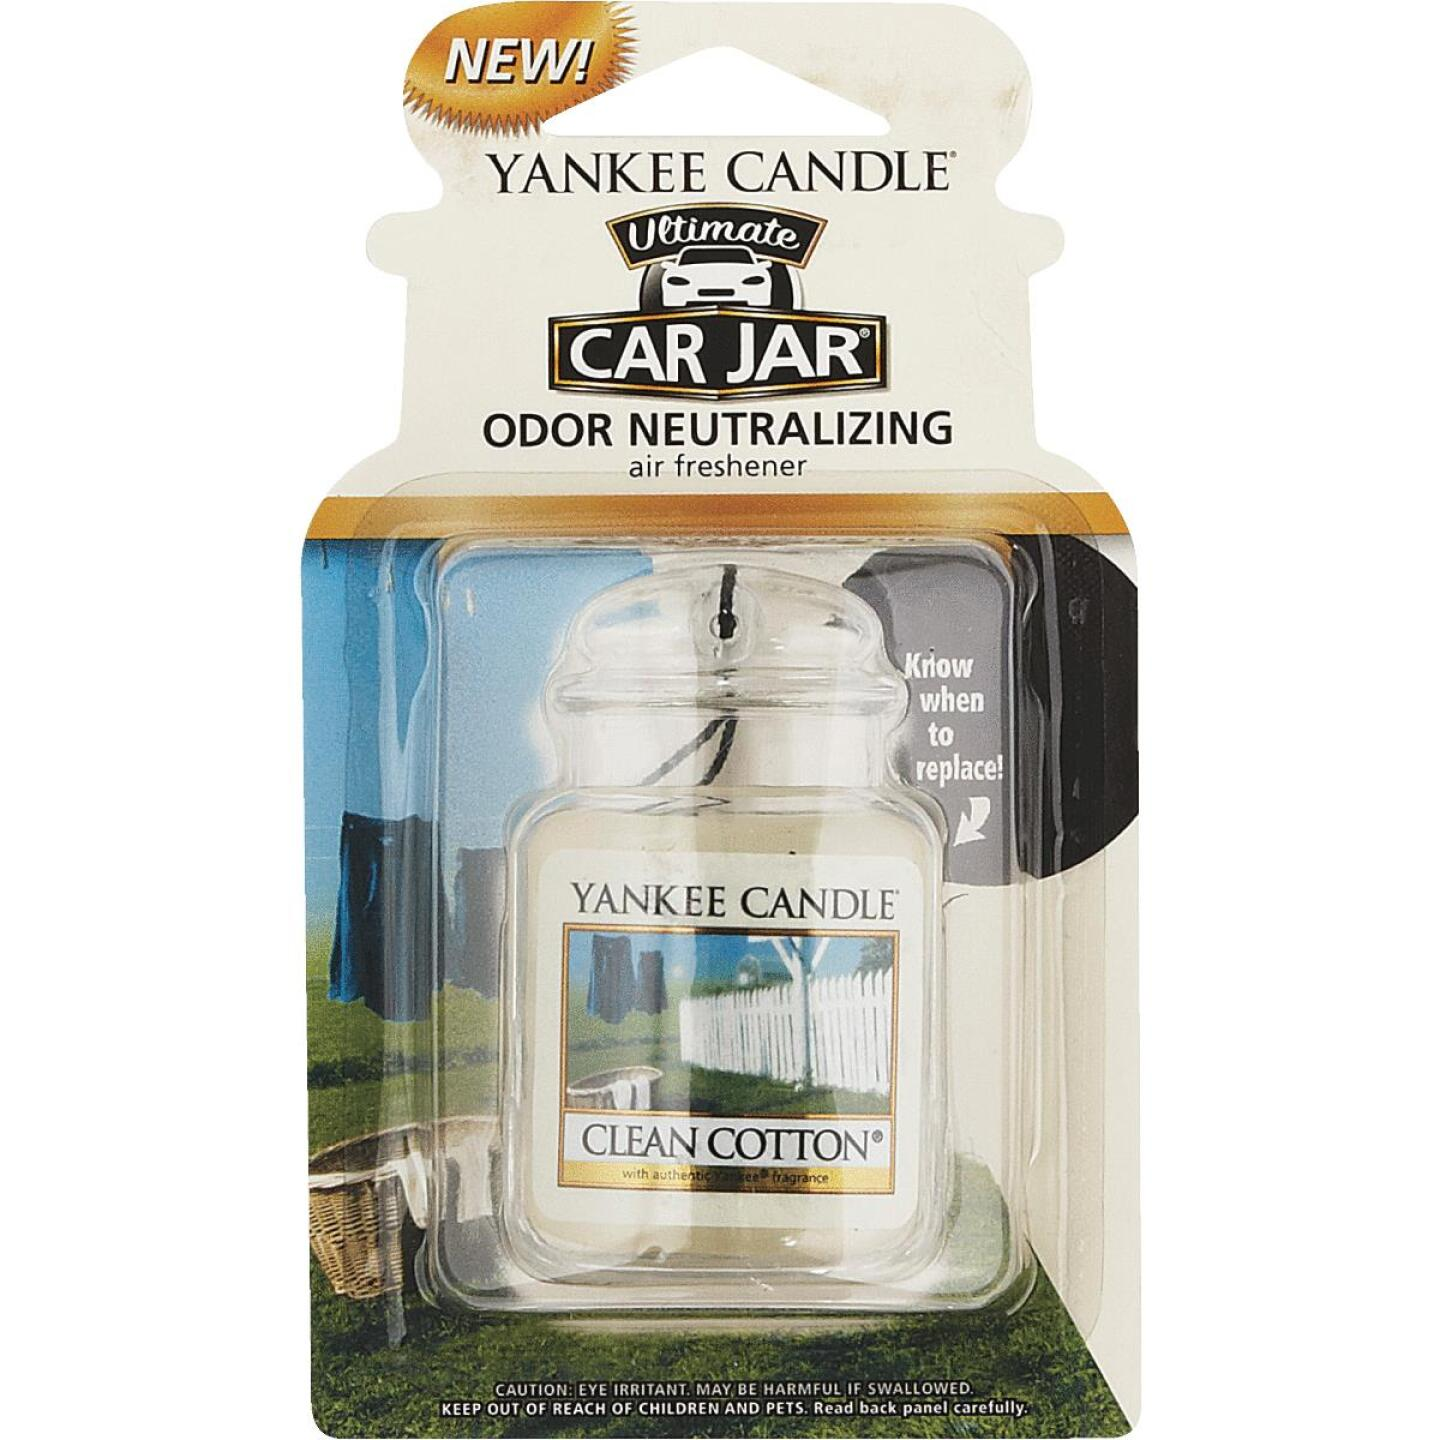 Yankee Candle Car Jar Ultimate Car Air Freshener, Clean Cotton Image 1